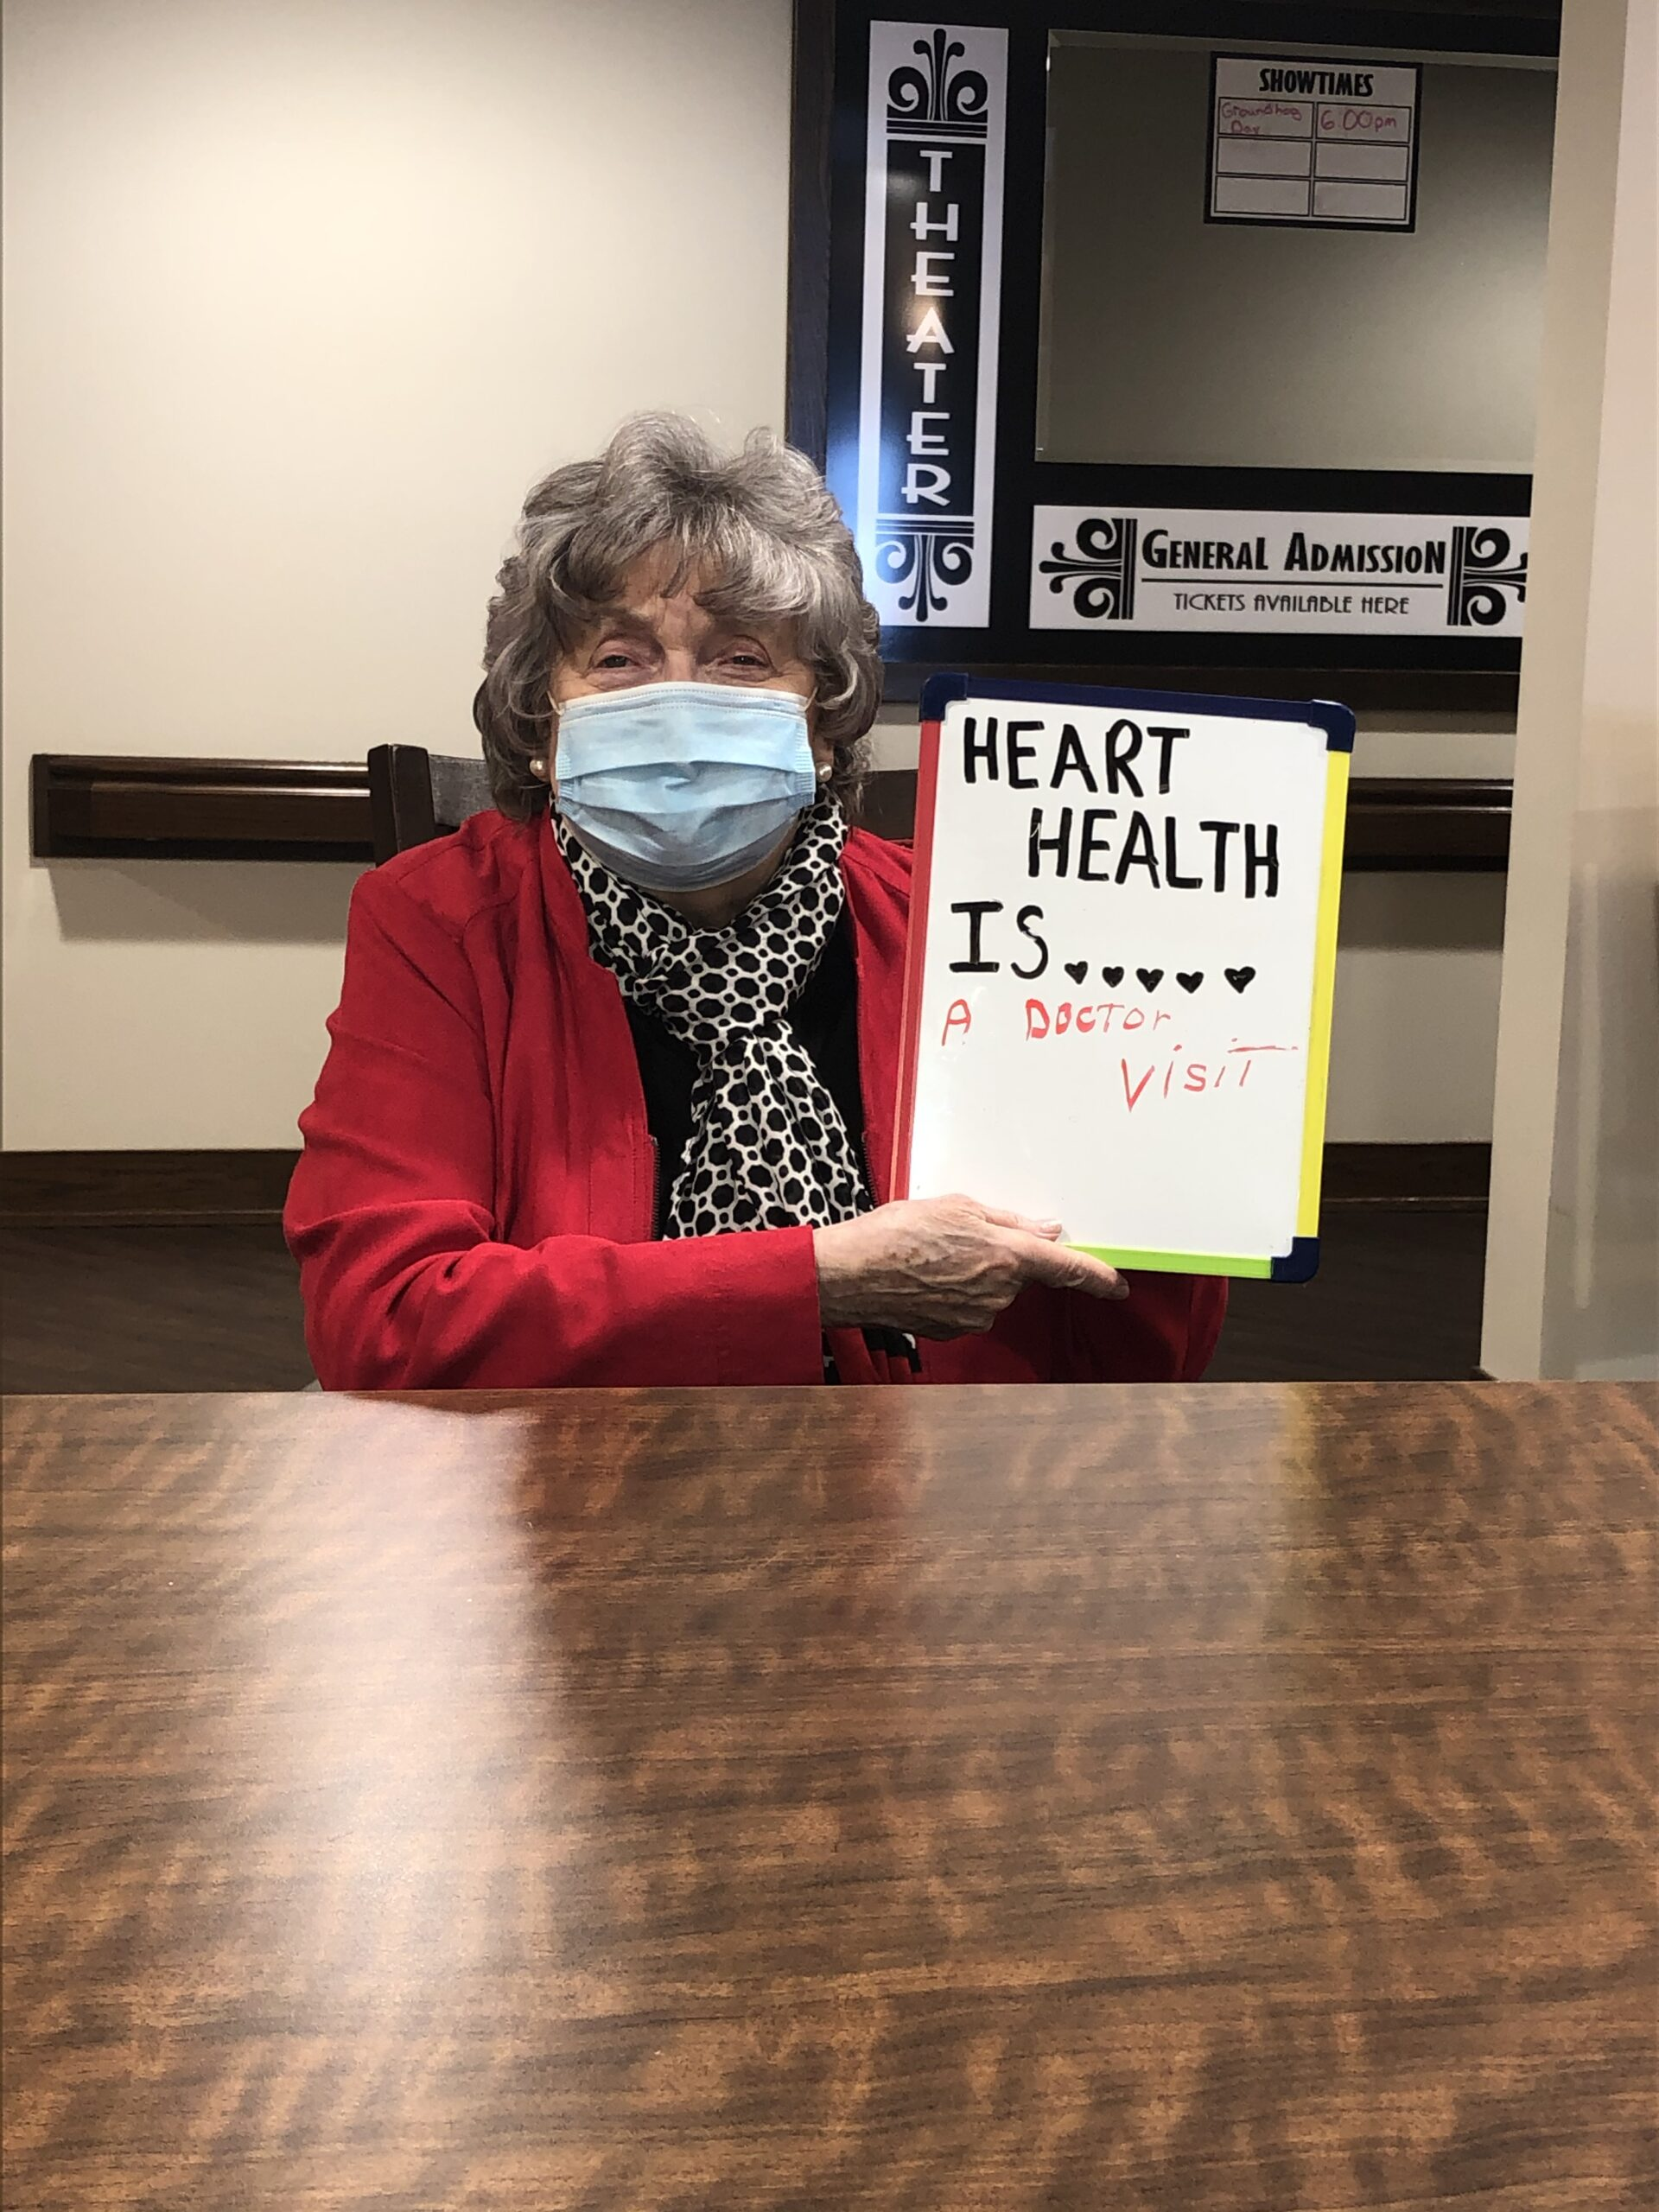 Darleensays  going to the doctor is Heart Health  to her